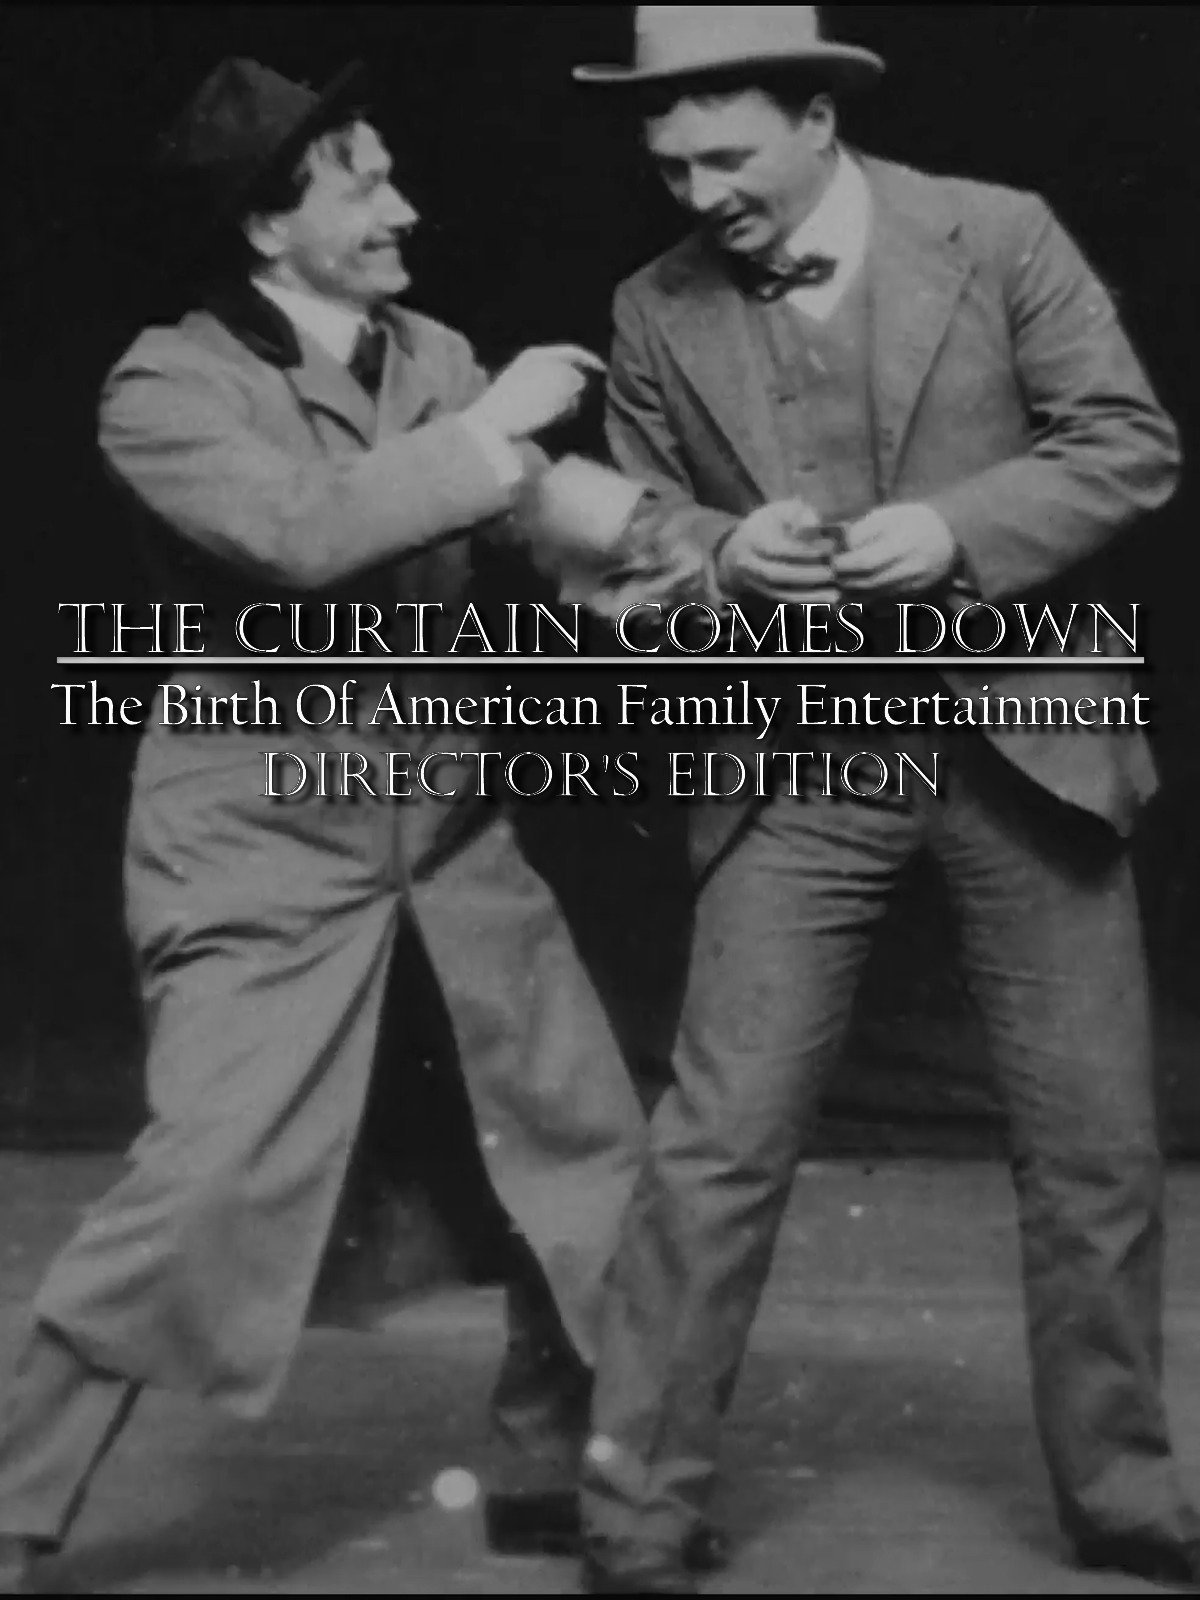 The Curtain Comes Down: The Birth of American Family Entertainment Director's Edition